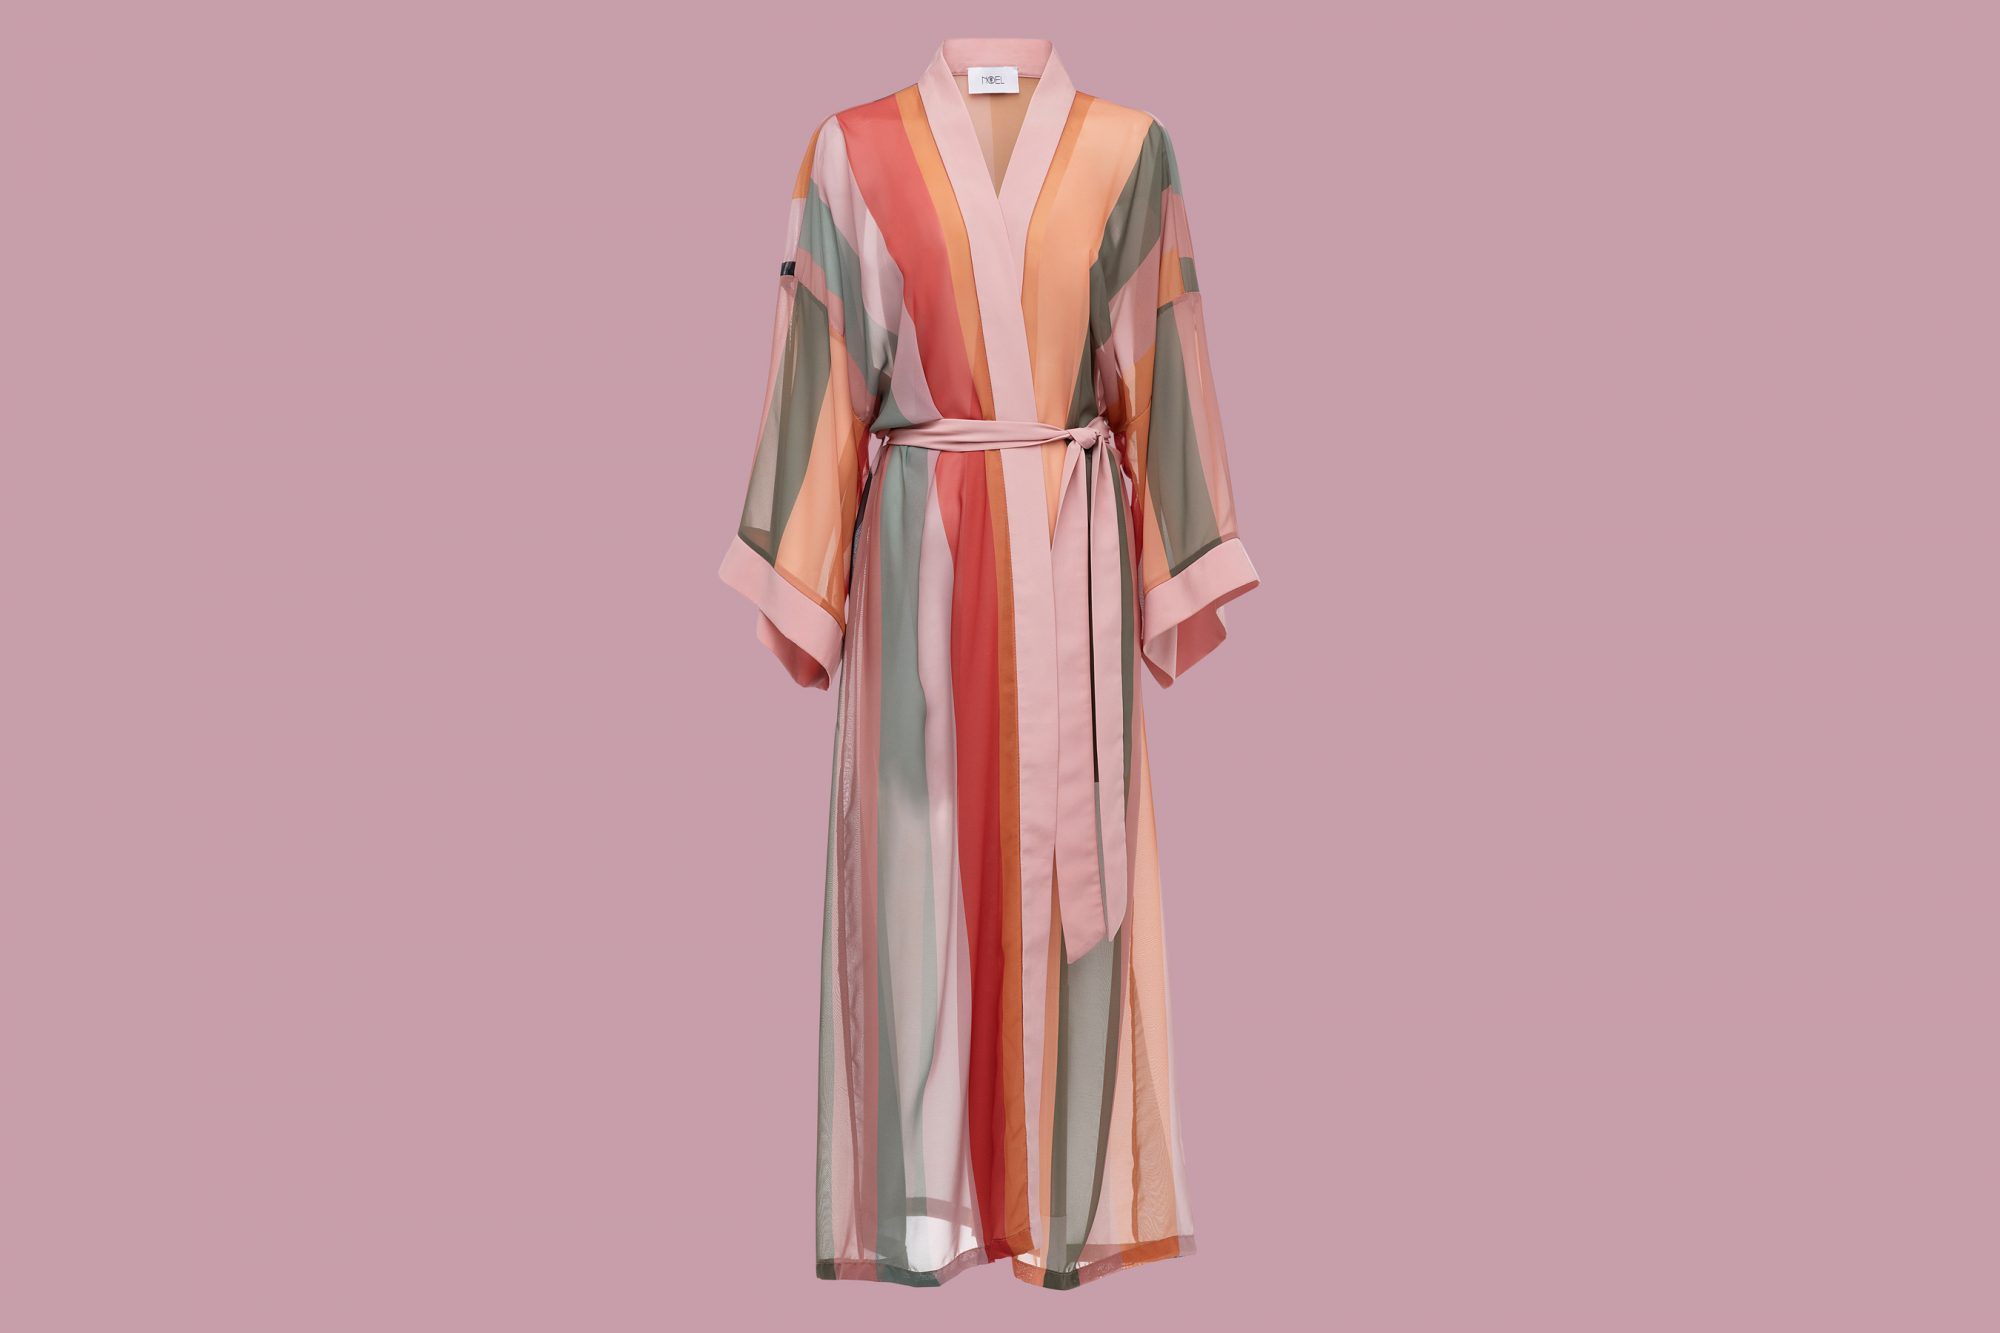 fe noel carenage stripe robe